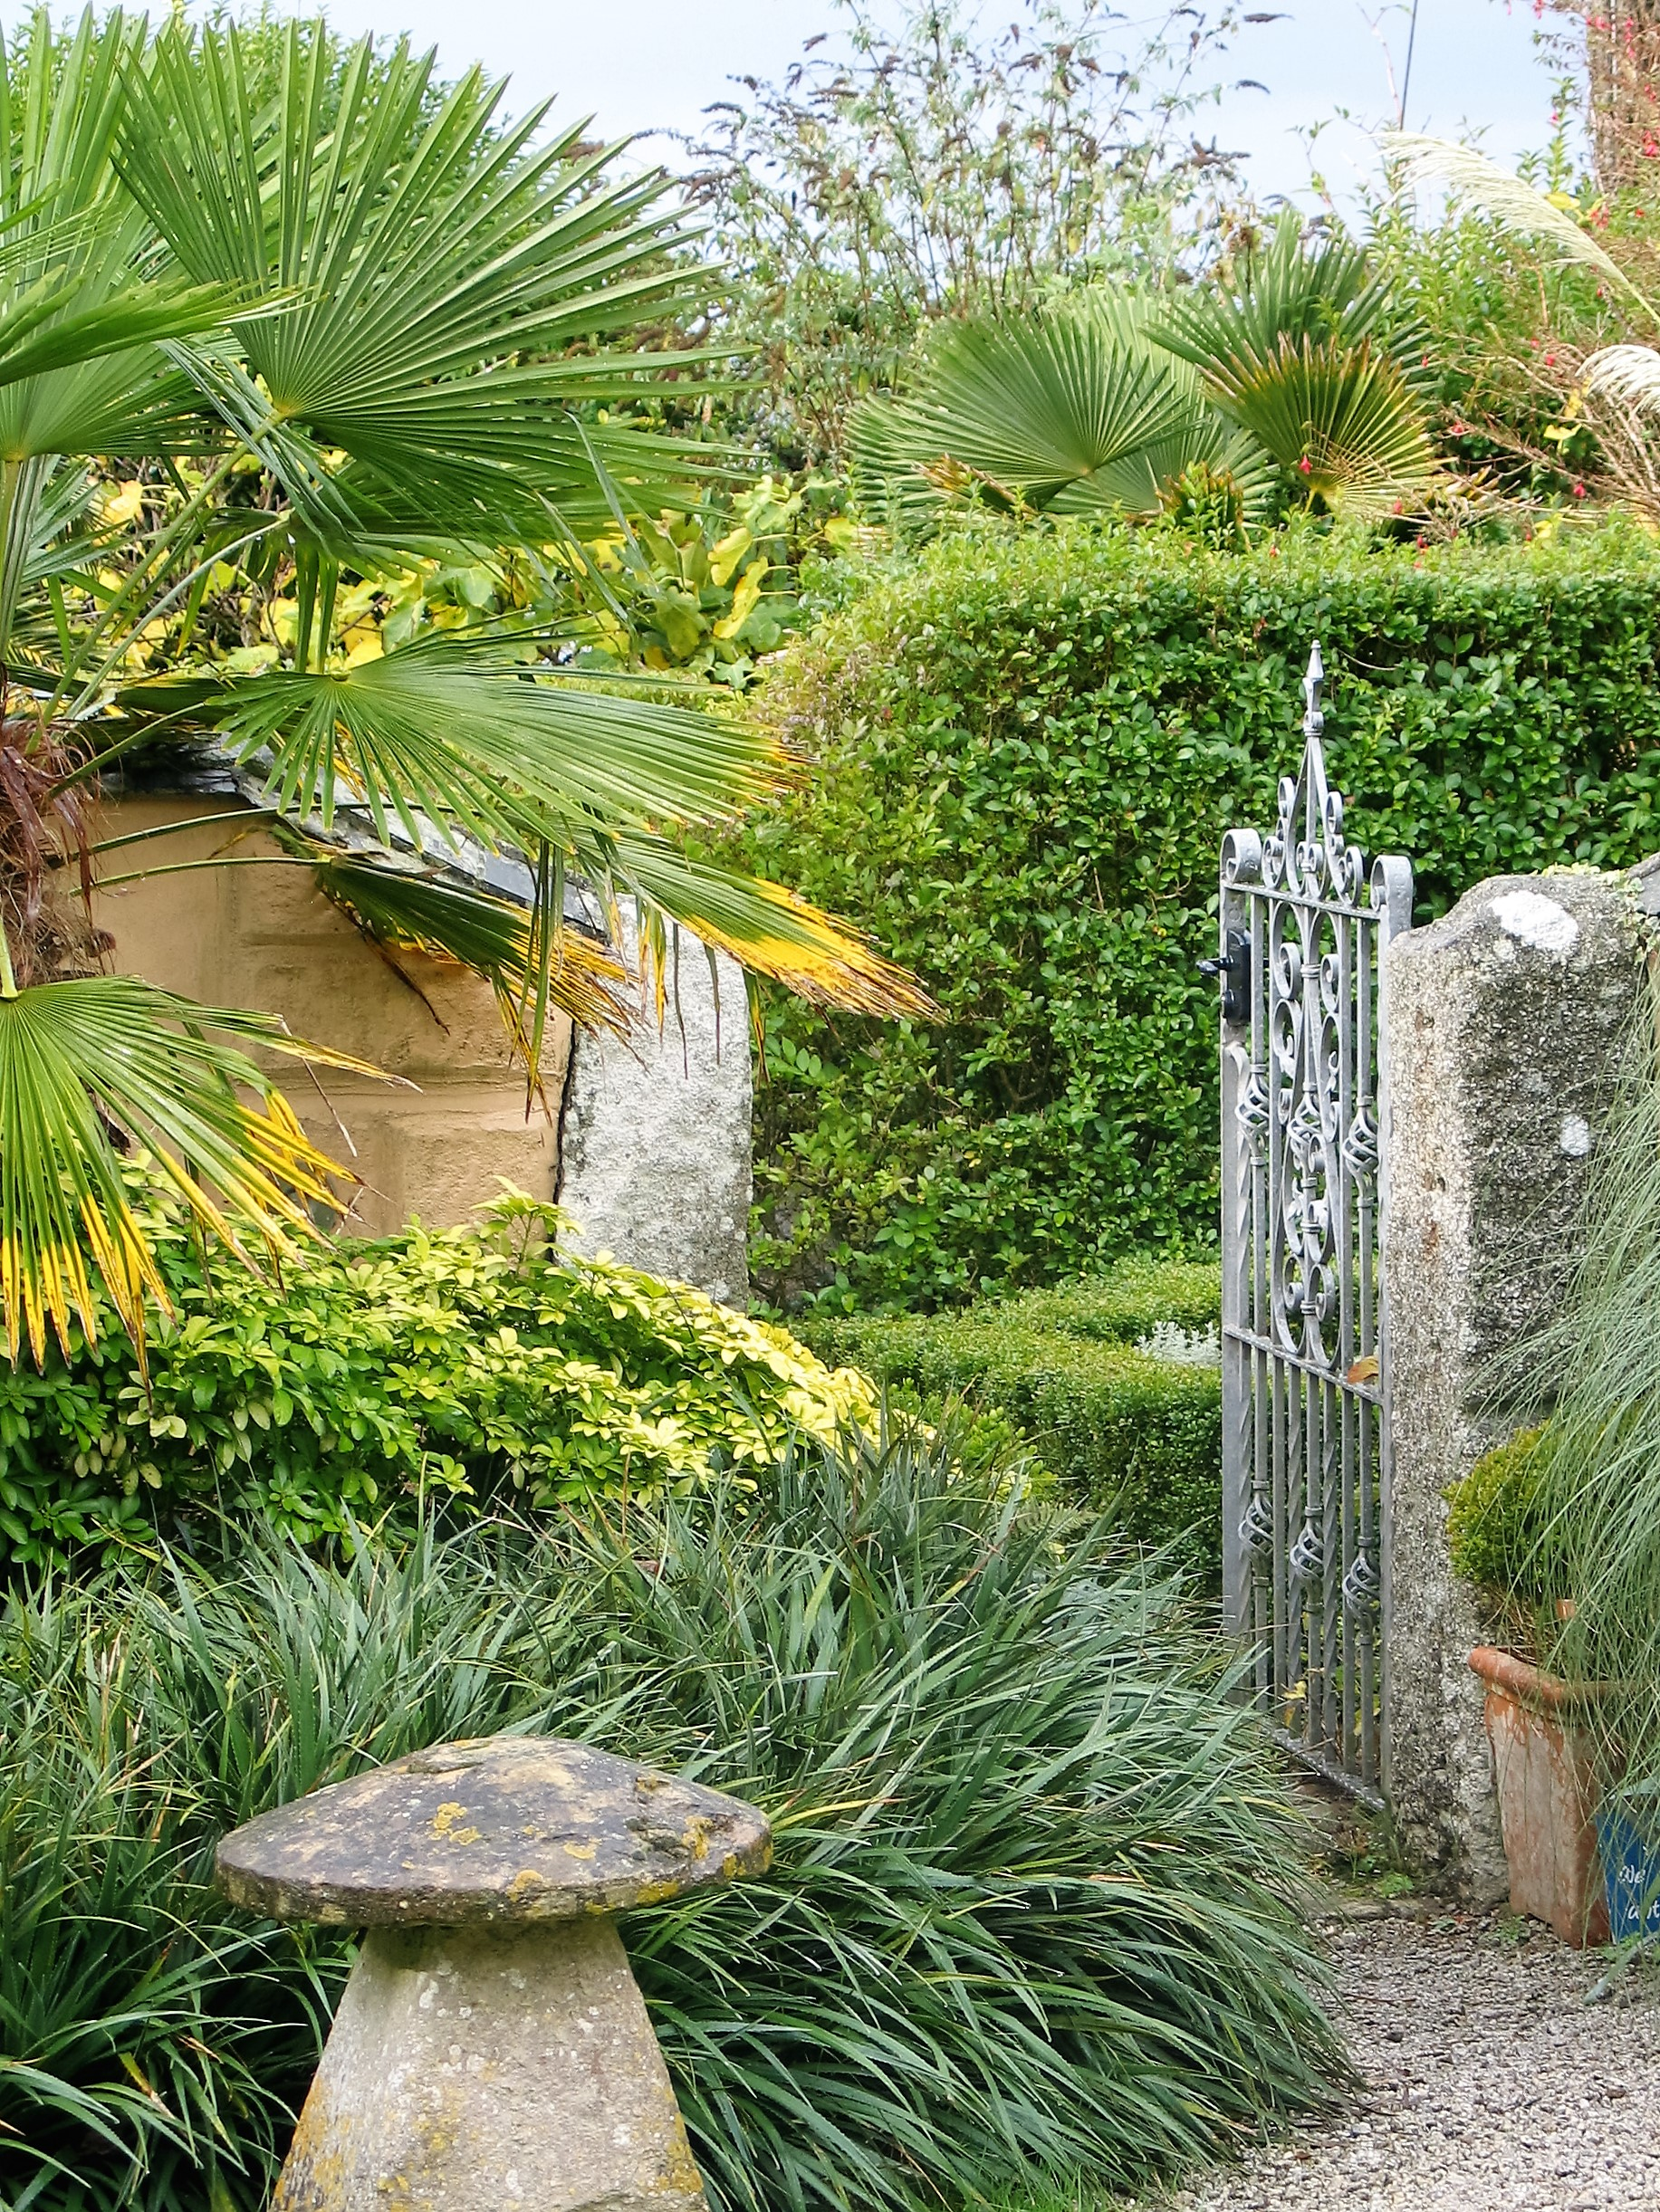 Stone mushrromm and grantie gatepost frame an entrance to a formal garden